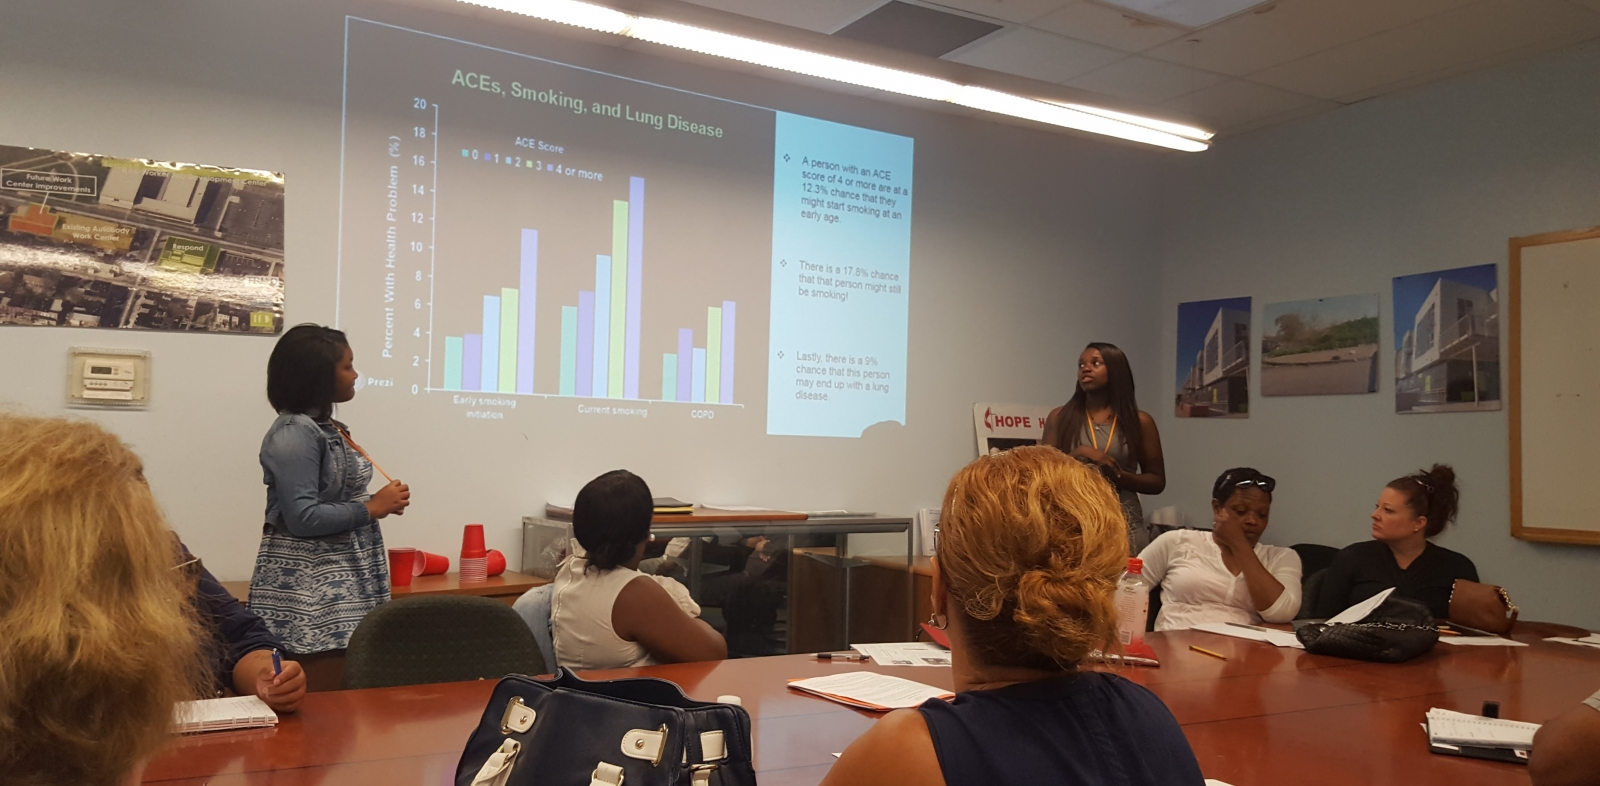 Hopeworks teens lead a workshop about ACEs science